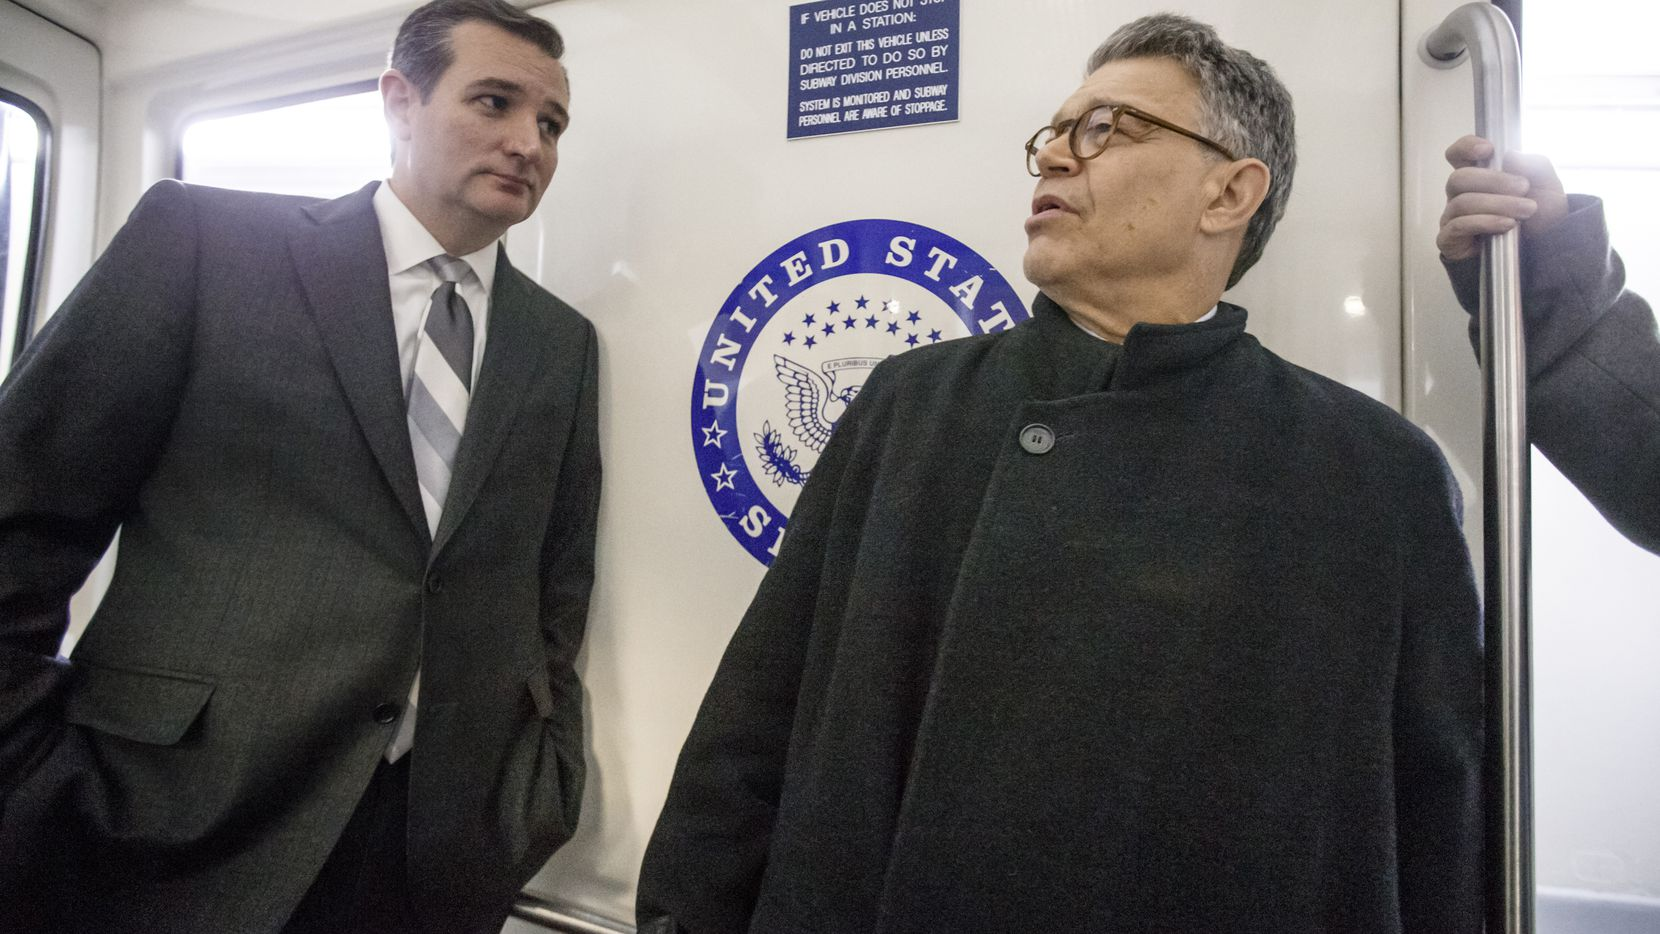 """Sen. Ted Cruz, R-Texas, left, and Sen. Al Franken, D-Minn., ride back back to their offices following roll call votes on Capitol Hill in Washington, Tuesday night, Nov. 18, 2014. Polar opposites on most issues, Cruz and Franken were in agreement when both voted """"yes"""" on a bill to end the bulk collection of American phone records by the National Security Agency, although the measure failed 58-42.  (AP Photo/J. Scott Applewhite)"""